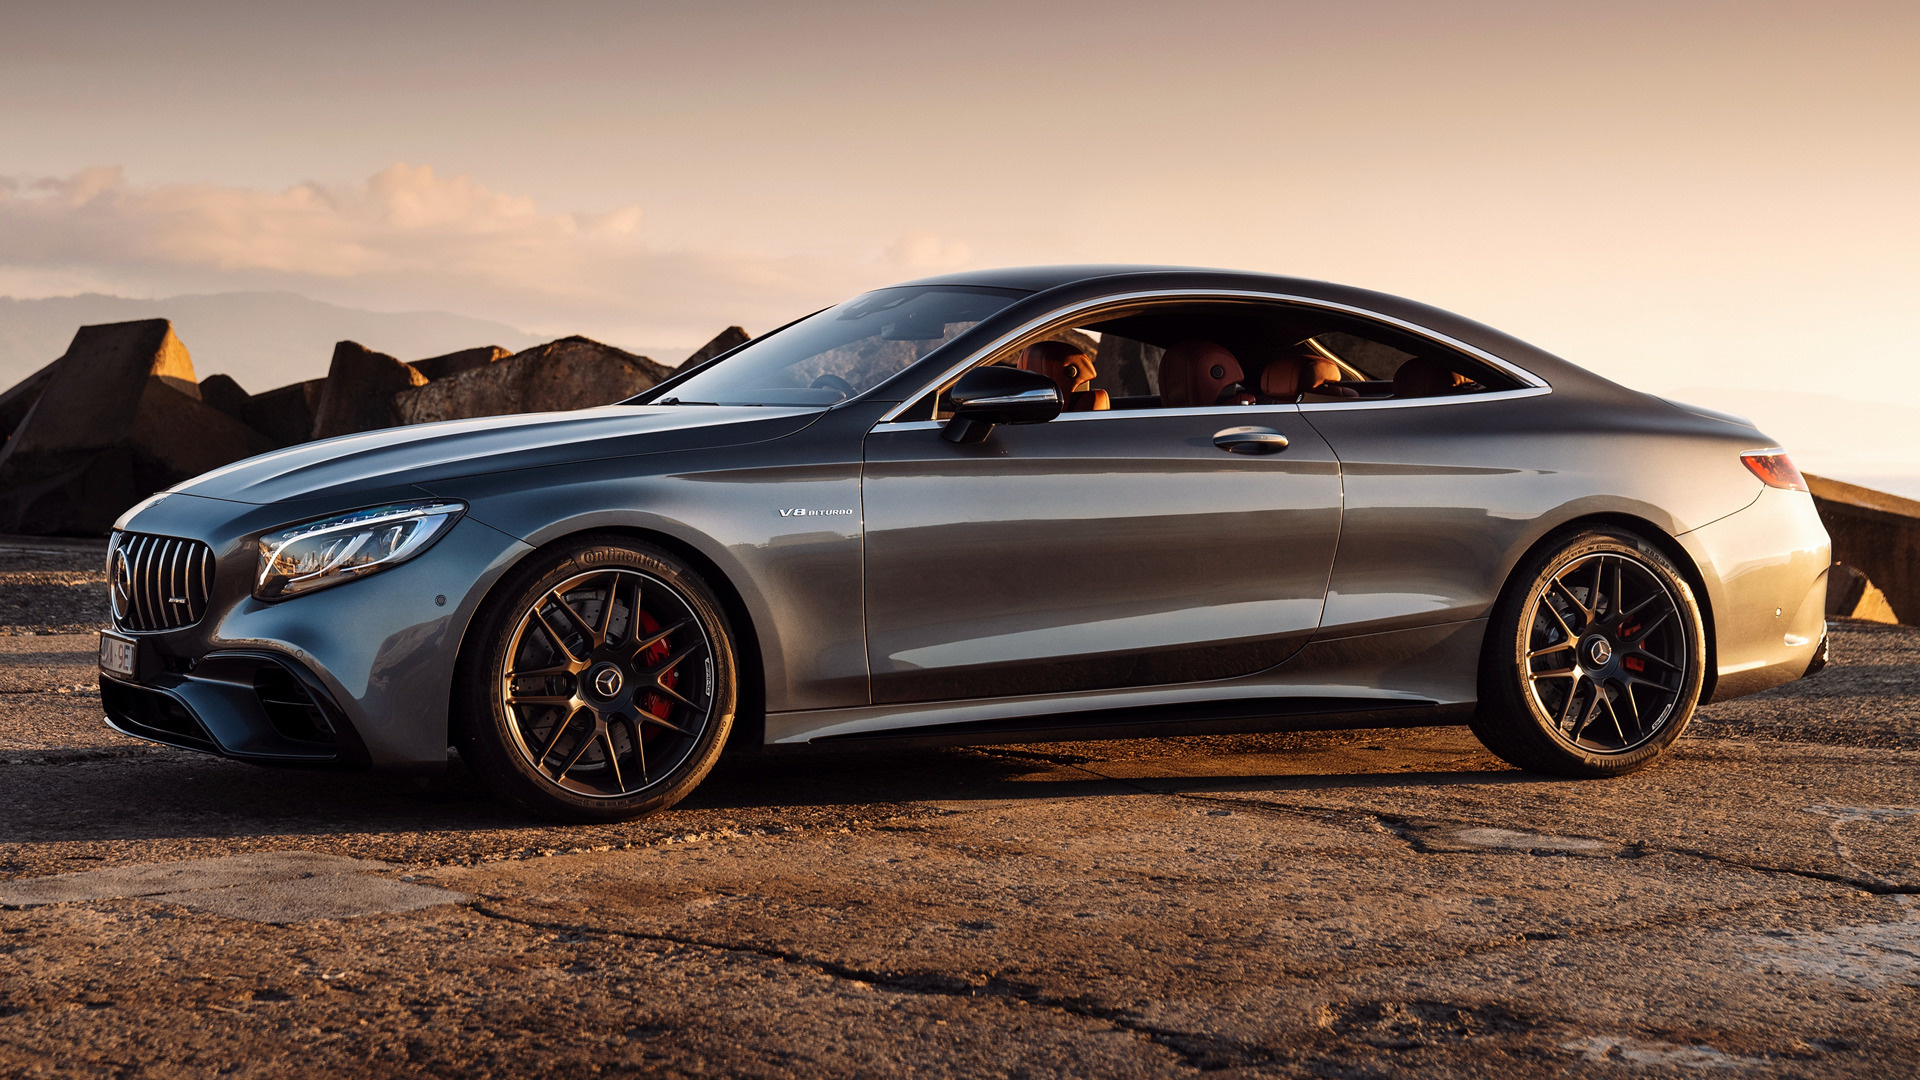 2018 Mercedes Amg S 63 Coupe Hd Wallpaper Background Image